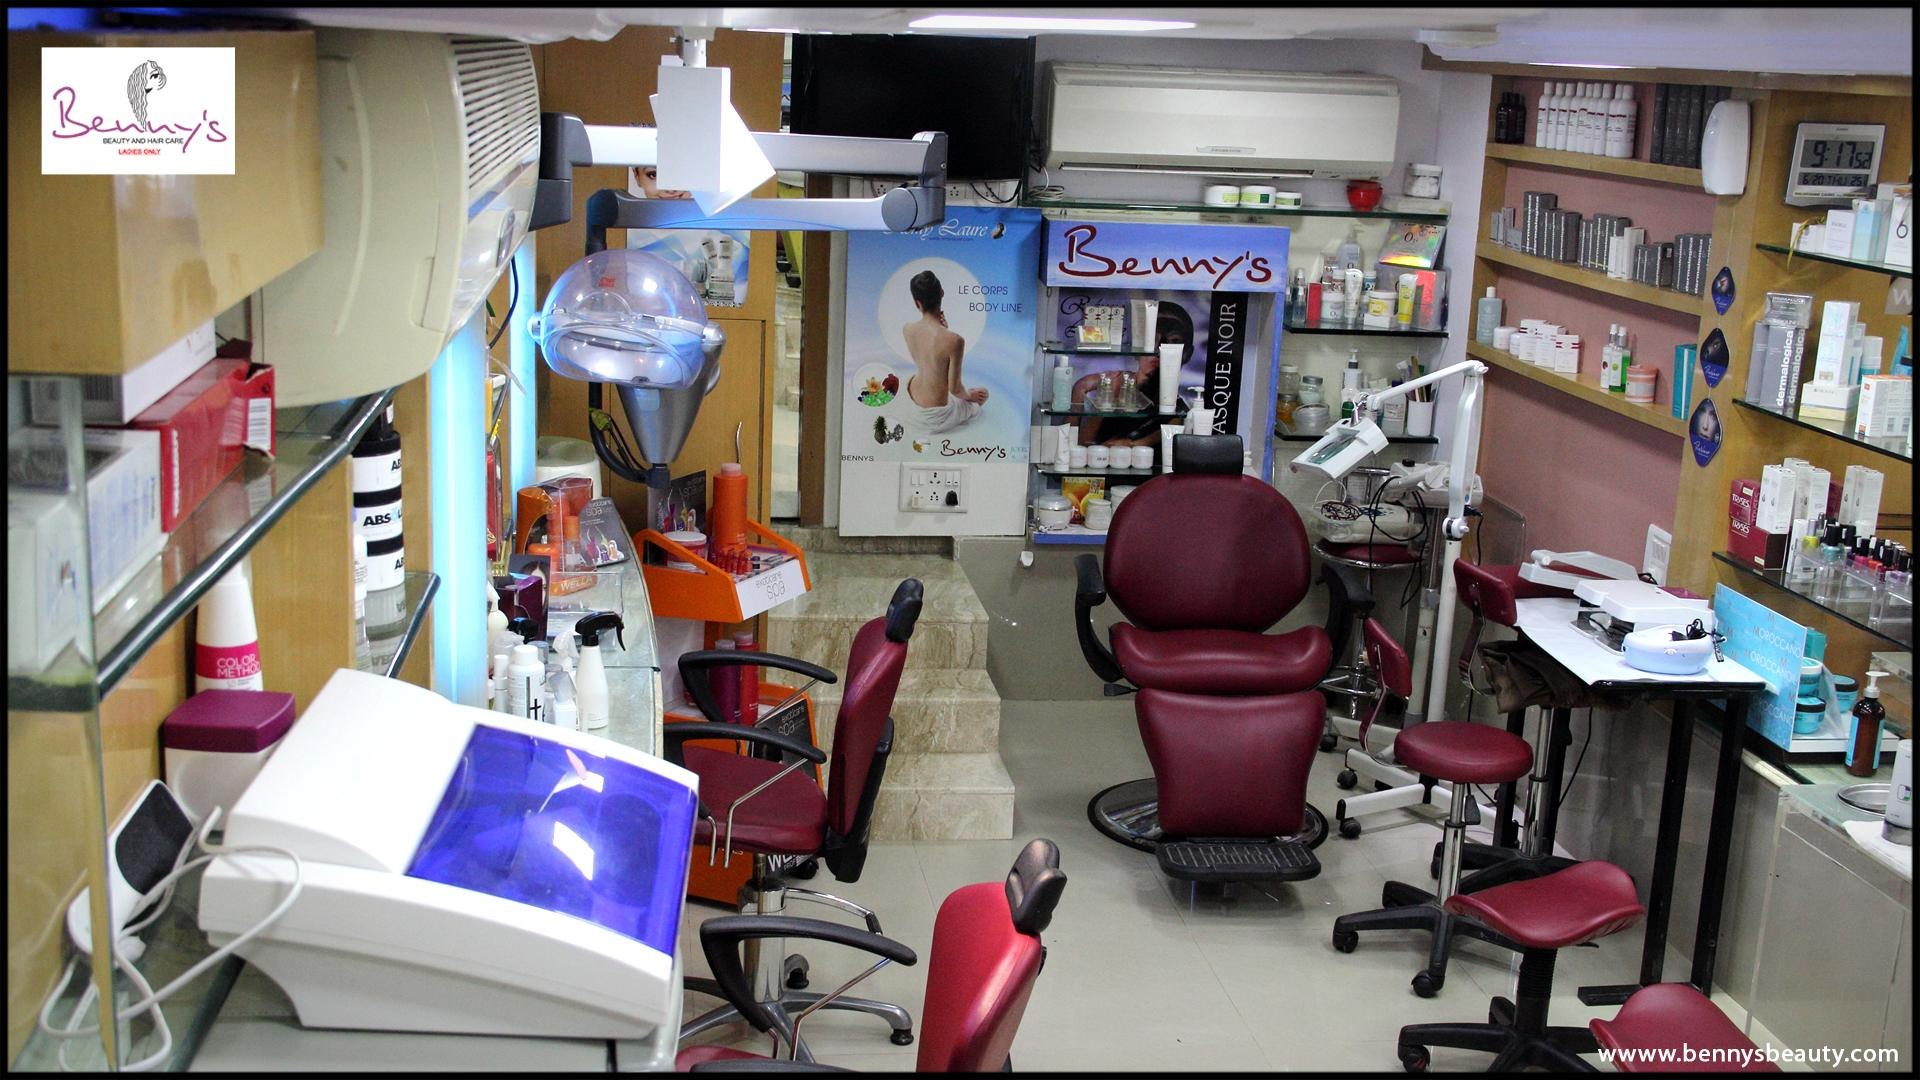 Bennys-Beauty-Salon---73